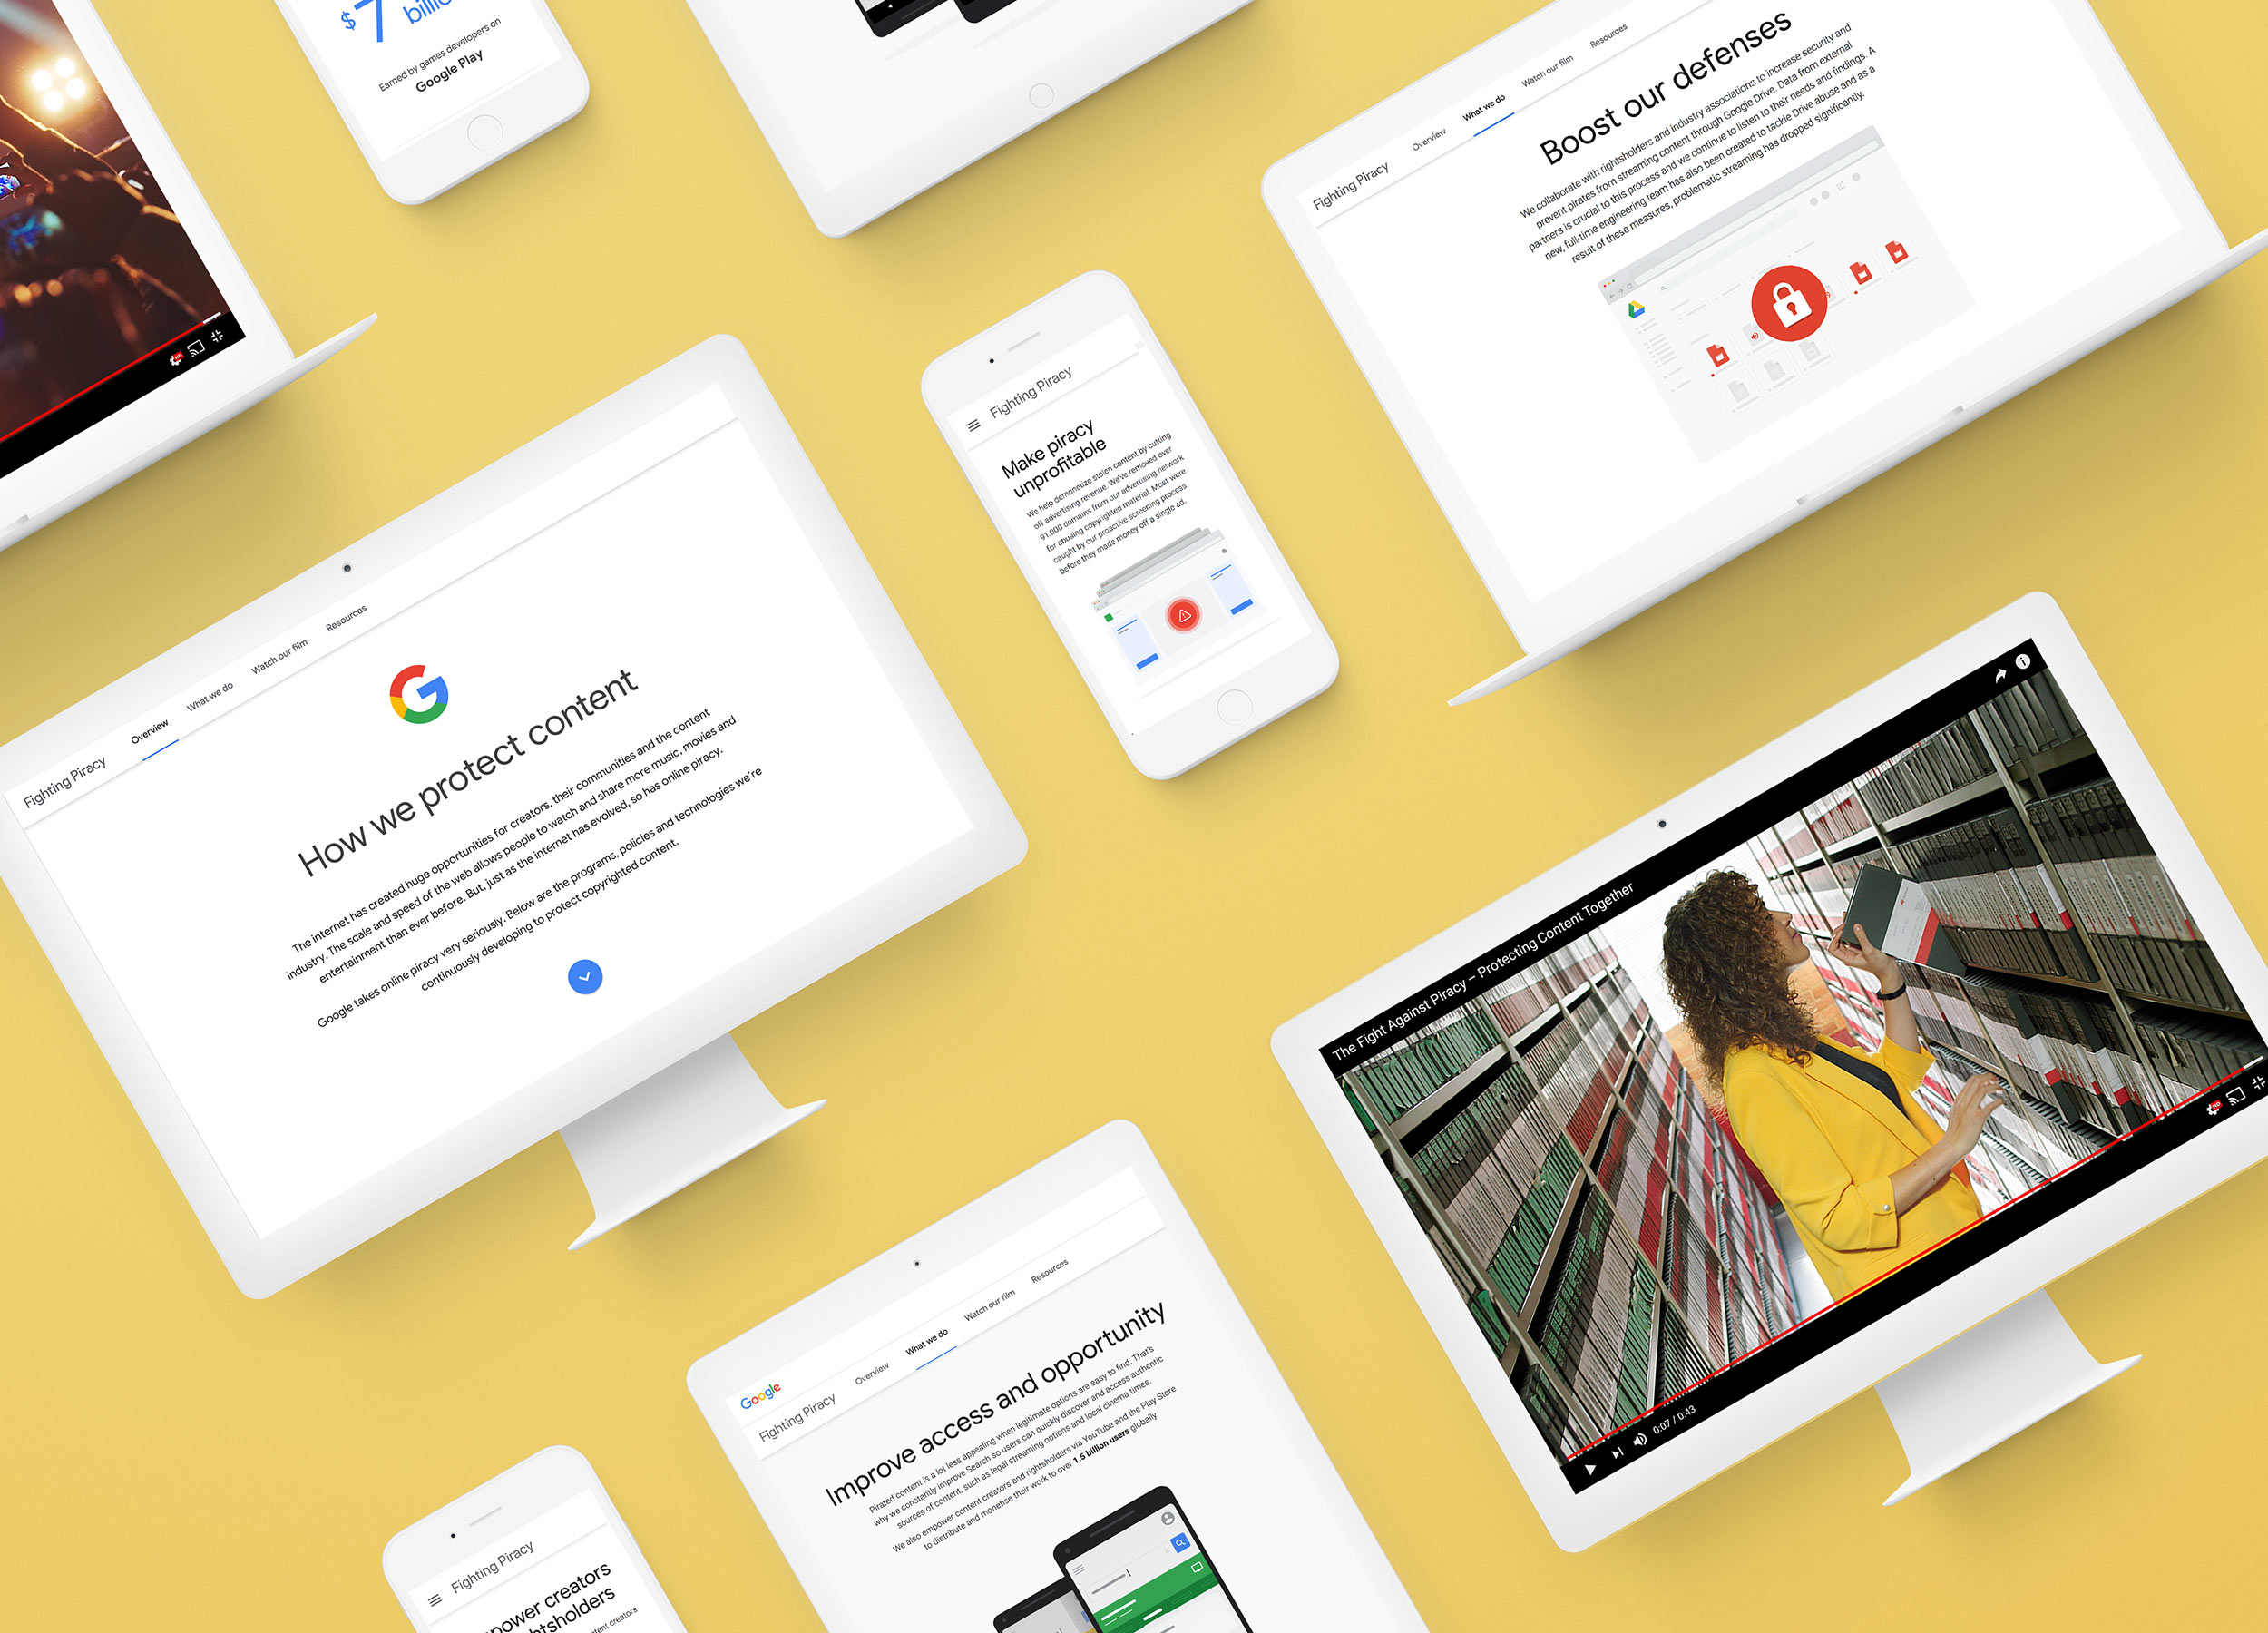 Google Piracy    Responsive web design & build, UX/UI, print, film, social